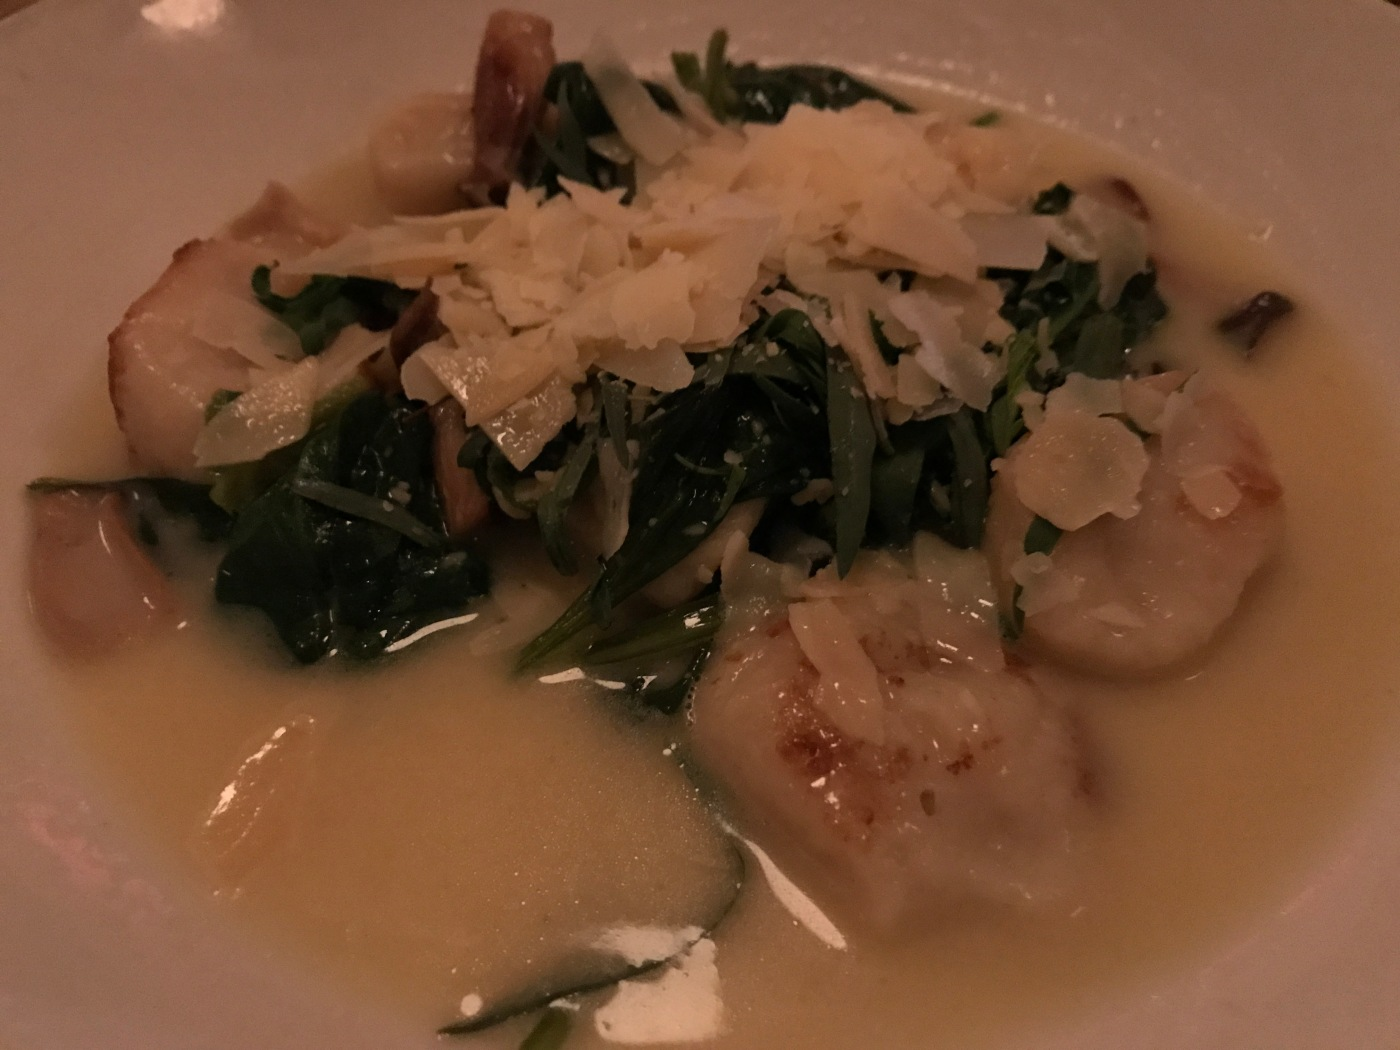 Potato Dumplings Served with King Trumpet Mushrooms, Spinach and Tarragon at Mayfield Bakery in Palo Alto, California